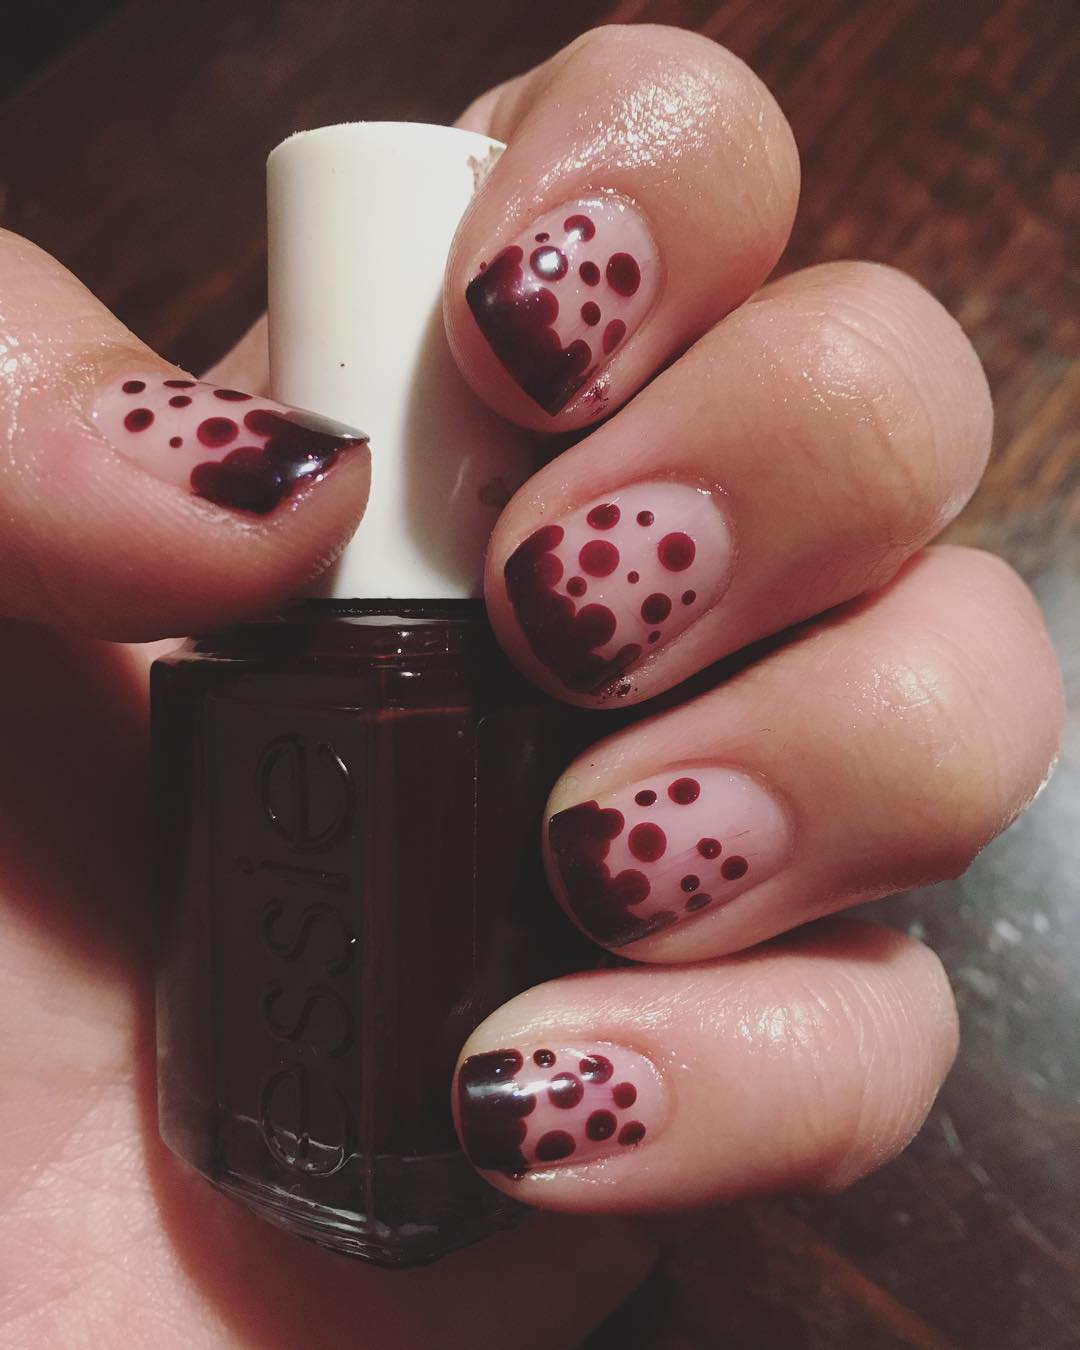 60 Polka Dots Nail Art Ideas You Can Do It Easily At Your Home